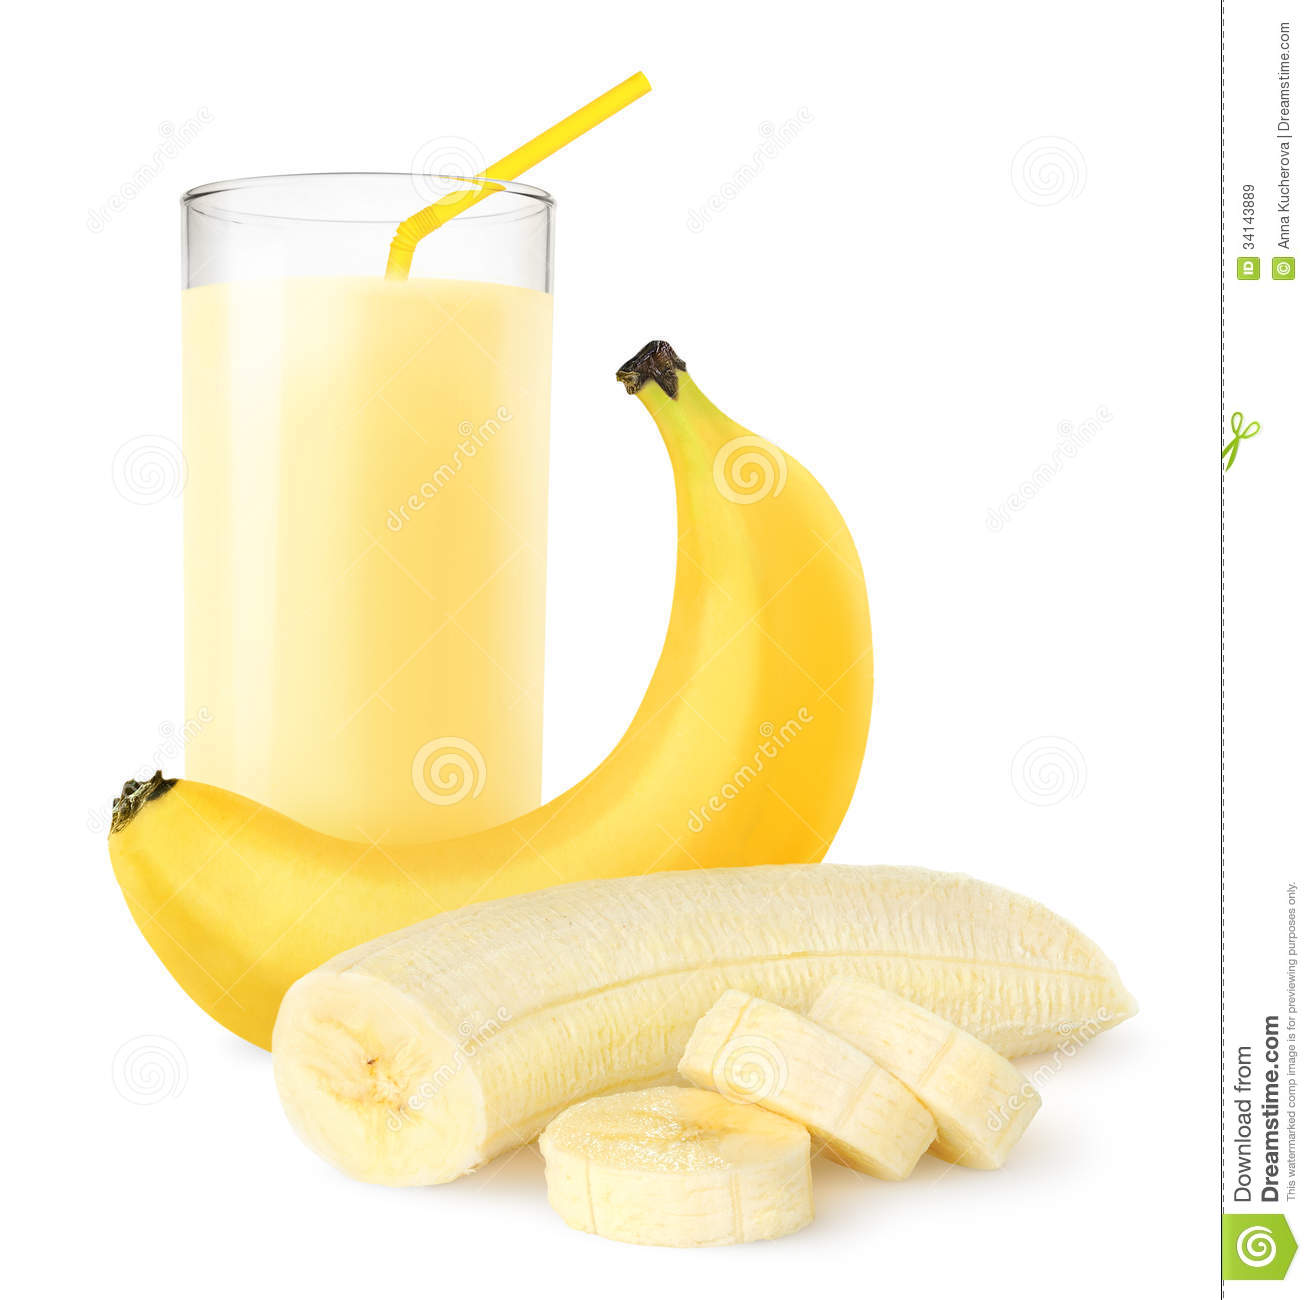 Royalty Free Stock Images Banana Shake Fresh Over White Background Image34143889 on cup of juice clip art